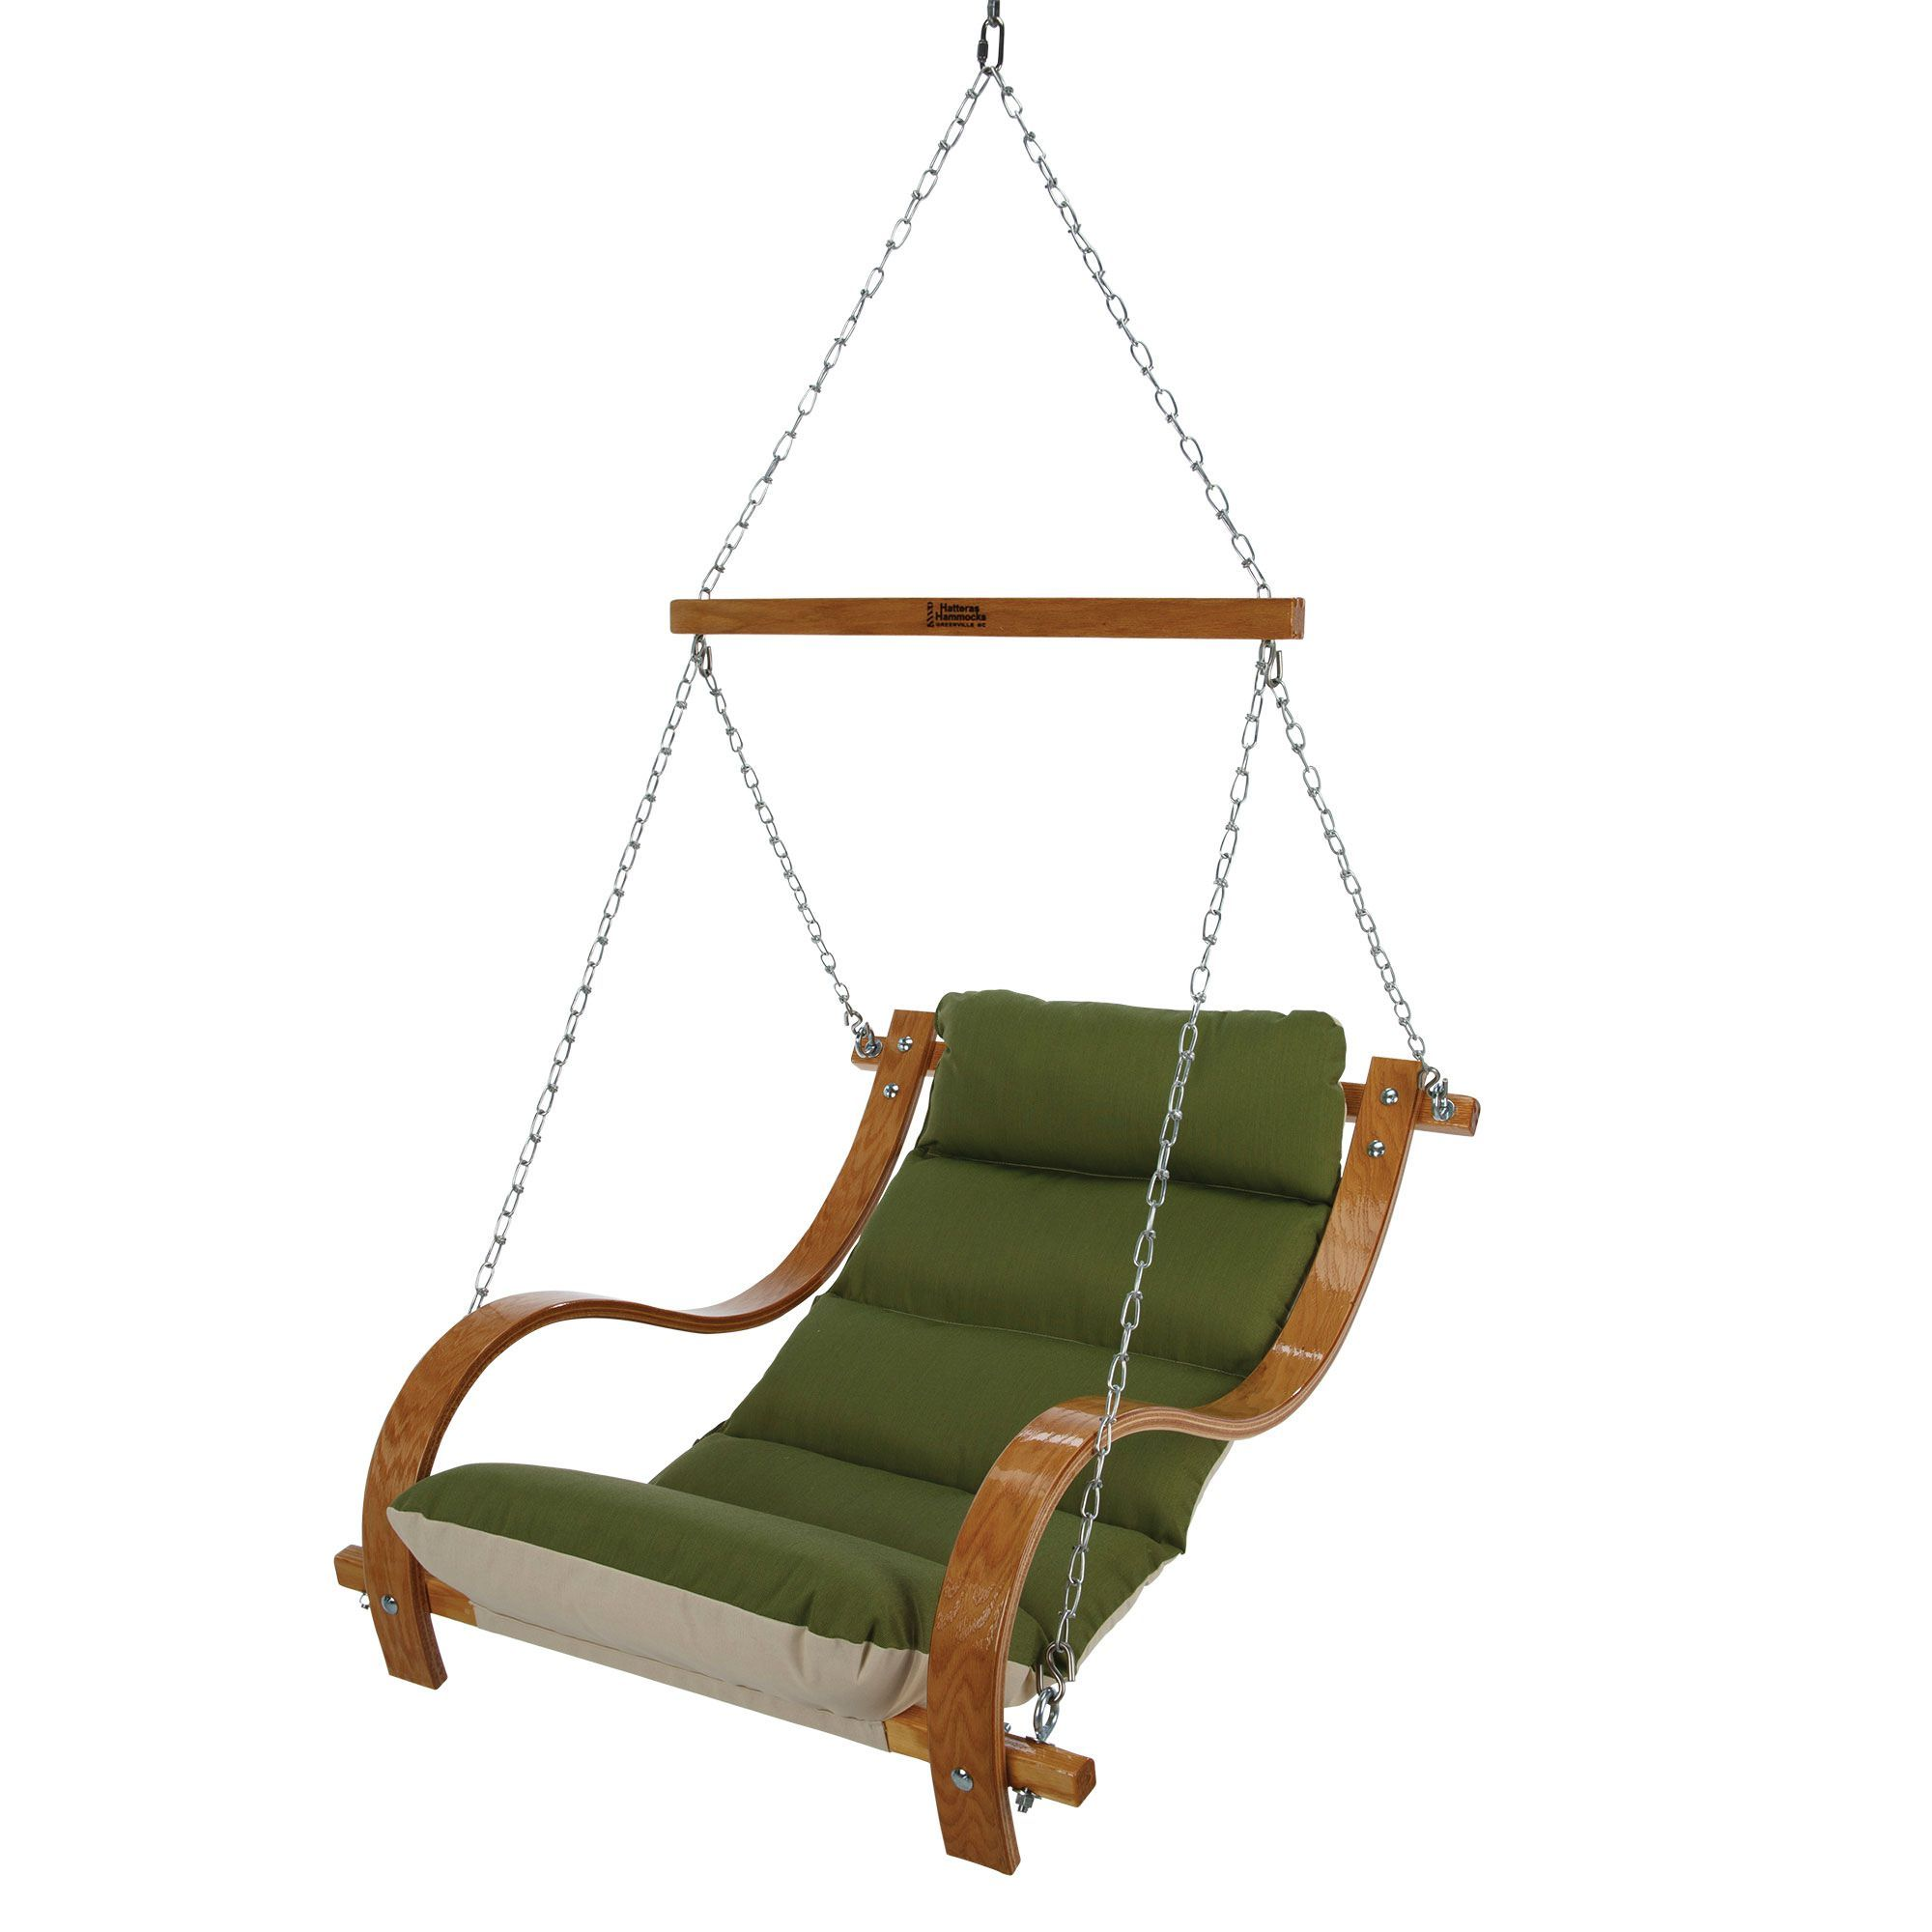 Single Swing With Oak Arms   Canvas Turf. (holds Up To 350 Pounds)